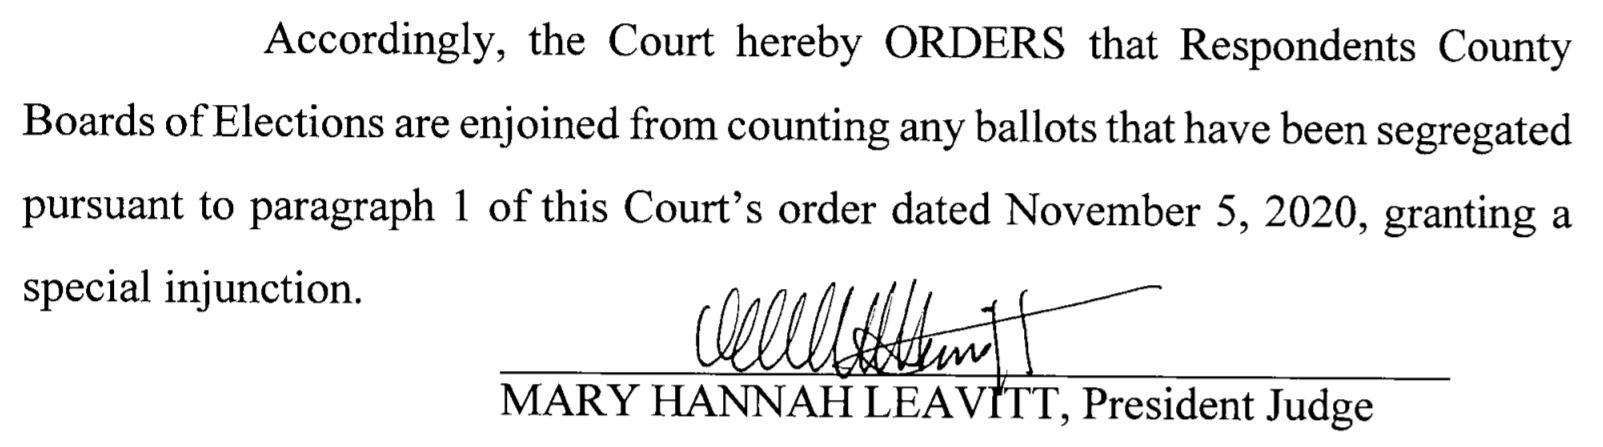 ORDER. (Nov. 12, 2020). Donald J. Trump for President Inc. v. Kathy Boockvar and County Boards of Elections, Case No. 602 MD 2020, President Judge Mary Hannah Leavitt (Pa. Commw. Ct. 2020).